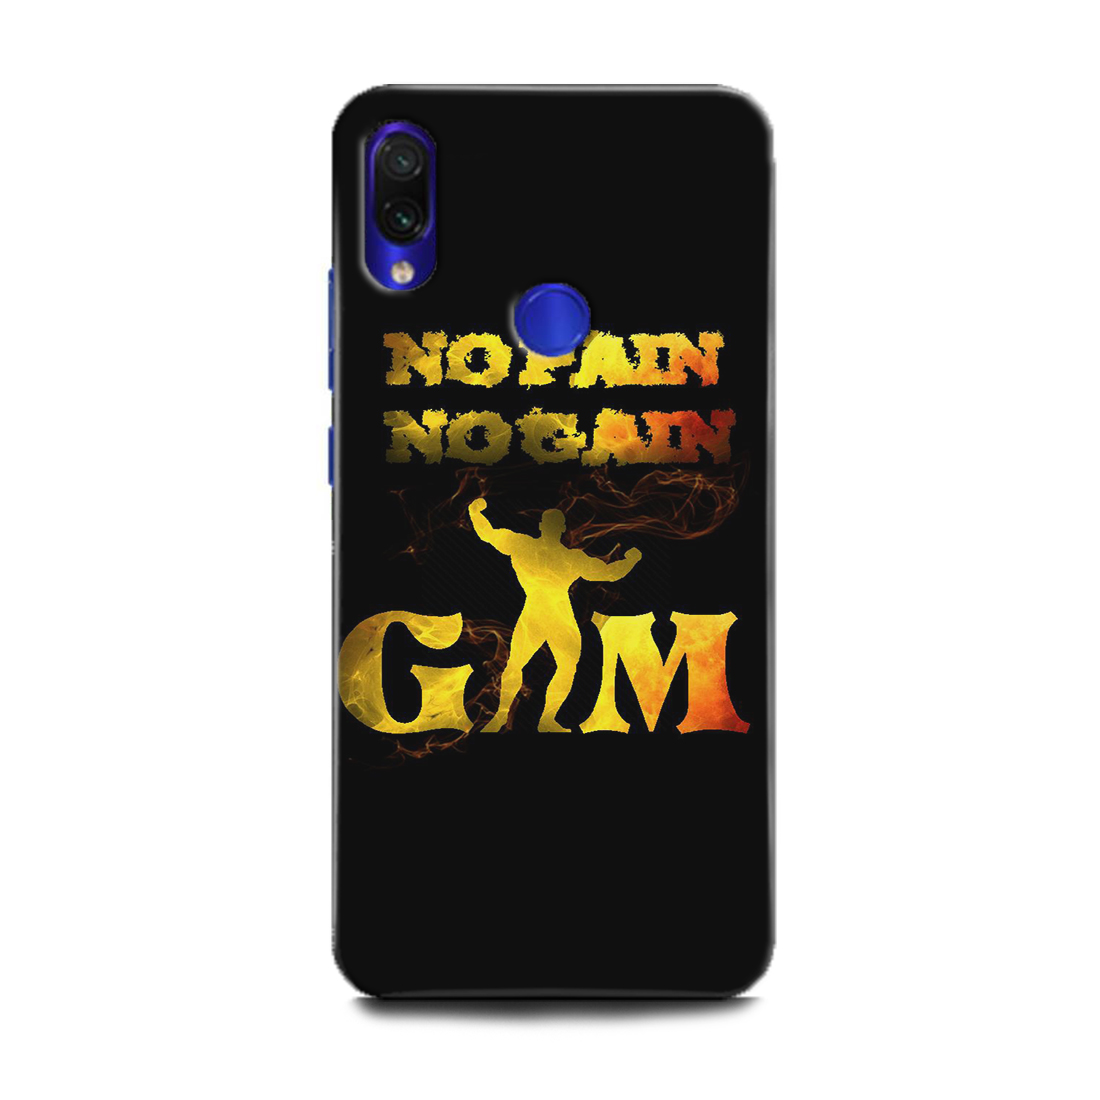 INDICRAFT Mobile Back Cover For Mi Redmi Note 7 / Hard Case (Gym, Fitness, Workout GYM, NO PAIN NO GAIN, Motivation, Inspiration, BodyBuilder, Sports, MZB7266IN) (AB-RedmiNote7-0198)